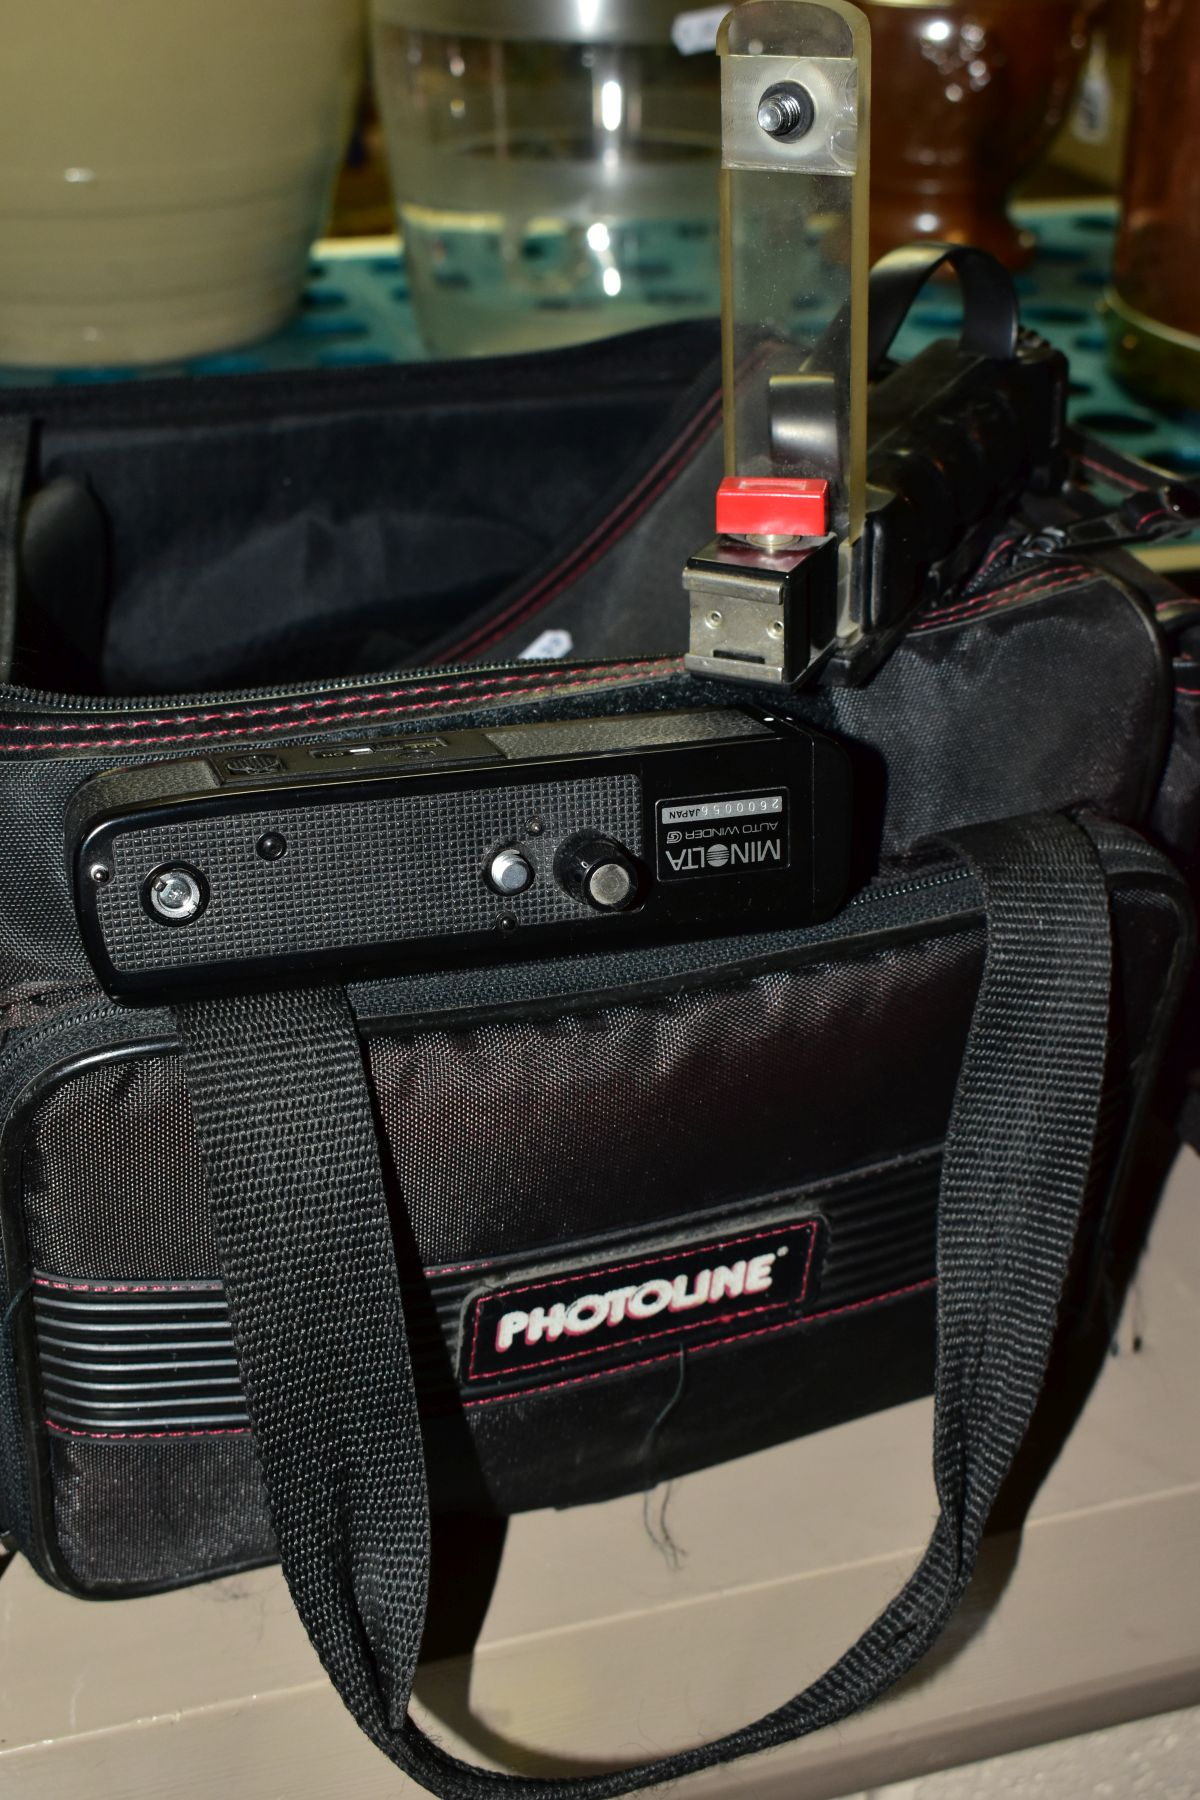 PHOTOGRAPHIC EQUIPMENT, comprising Minolta XG-1 35mm film SLR Camera body fitted with a Sirius 28-70 - Image 4 of 4